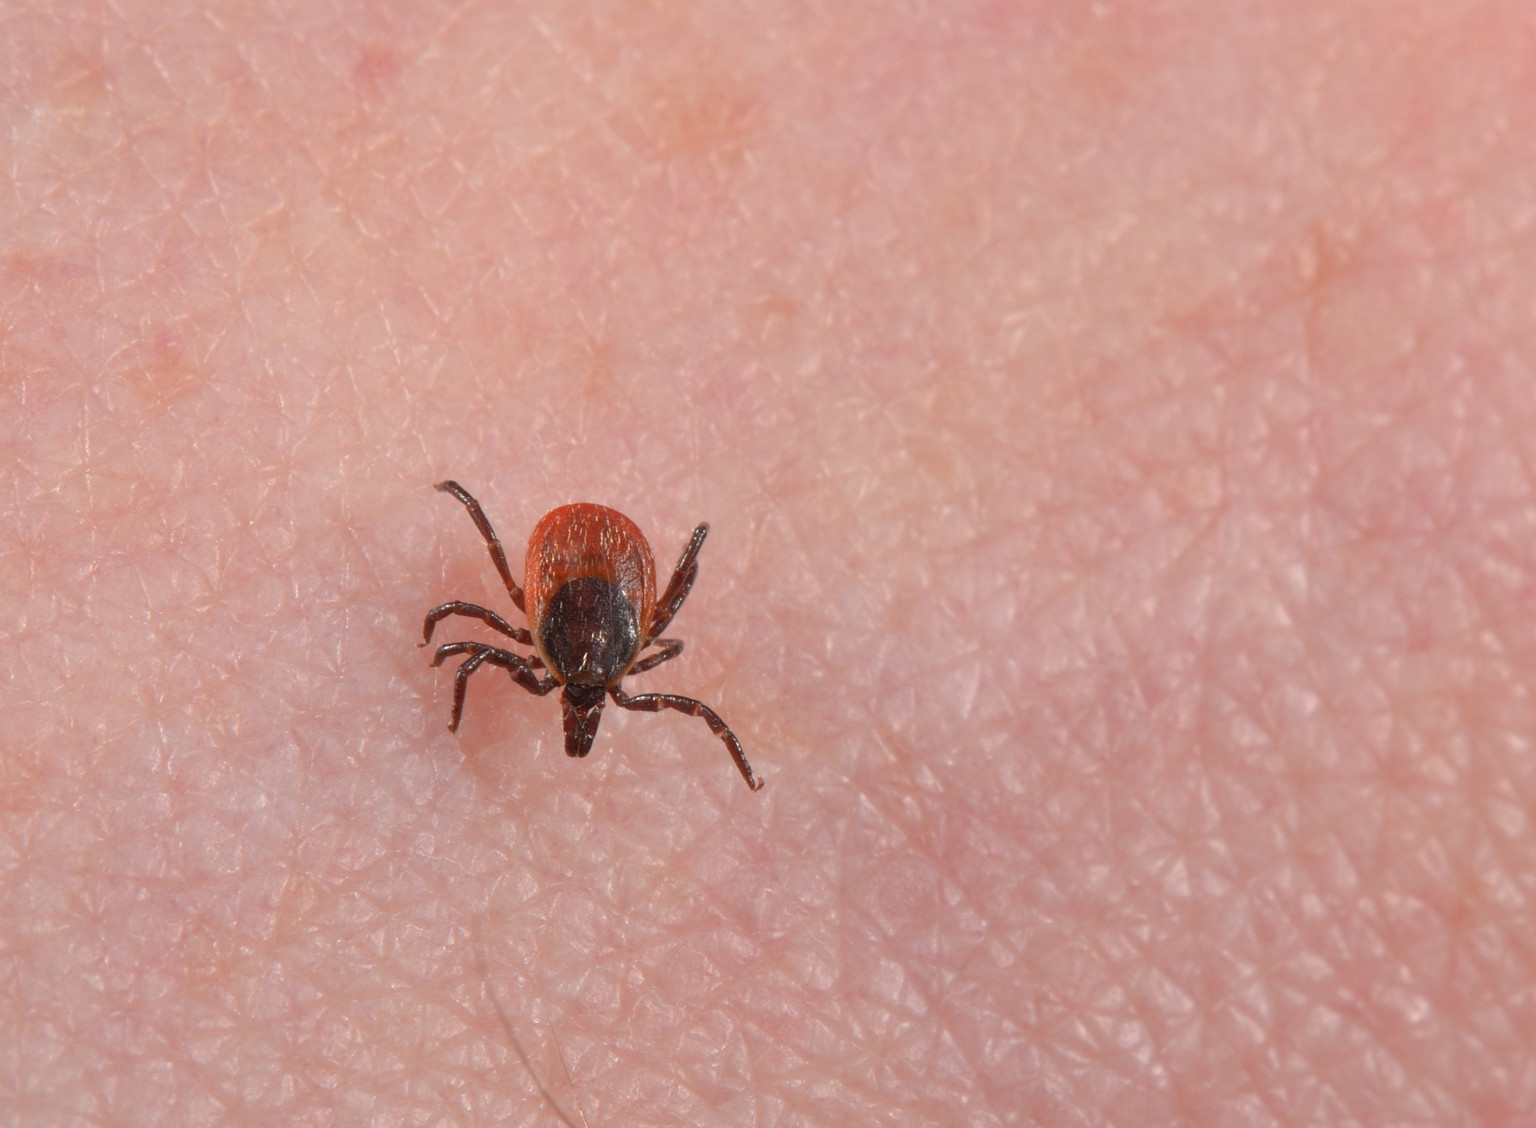 lyme s disease Lyme borreliosis (lyme disease) cause the spirochaete borrelia burgdorferi, of which there are several different serotypes transmission infection occurs through the bite of infected ticks, both adults and nymphs, of the genus ixodes.